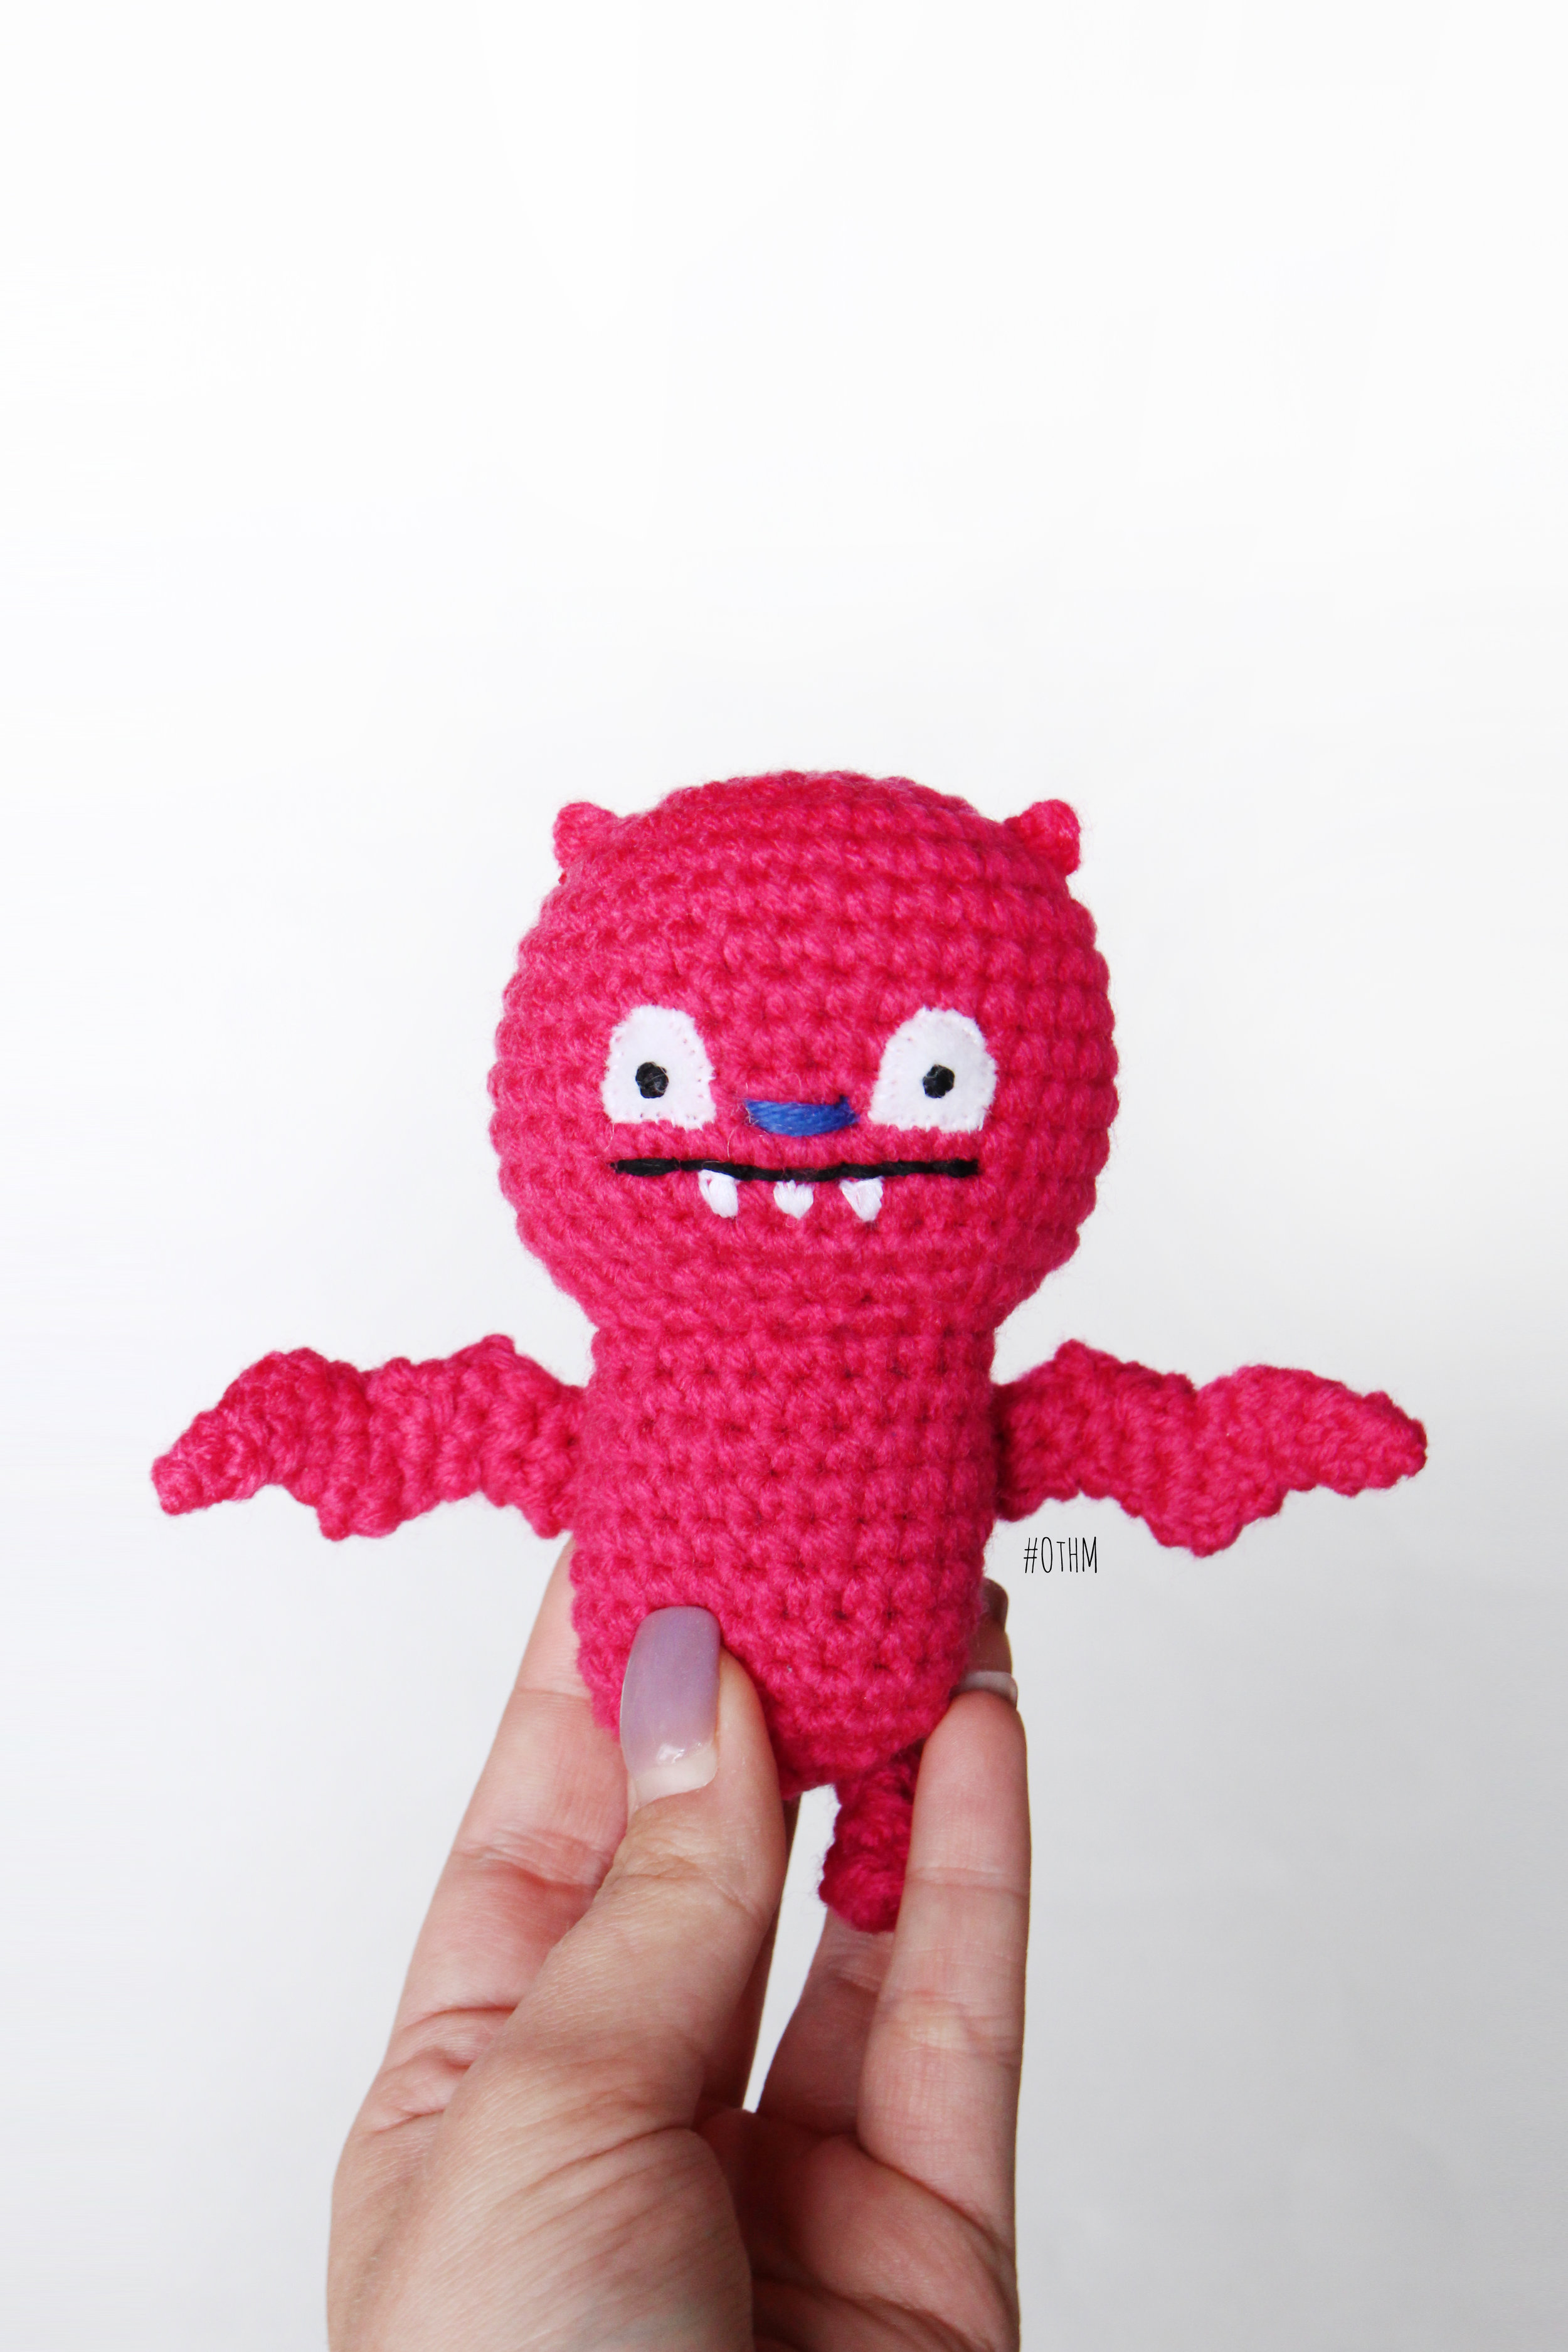 Lucky Bat From the new Ugly dolls movie